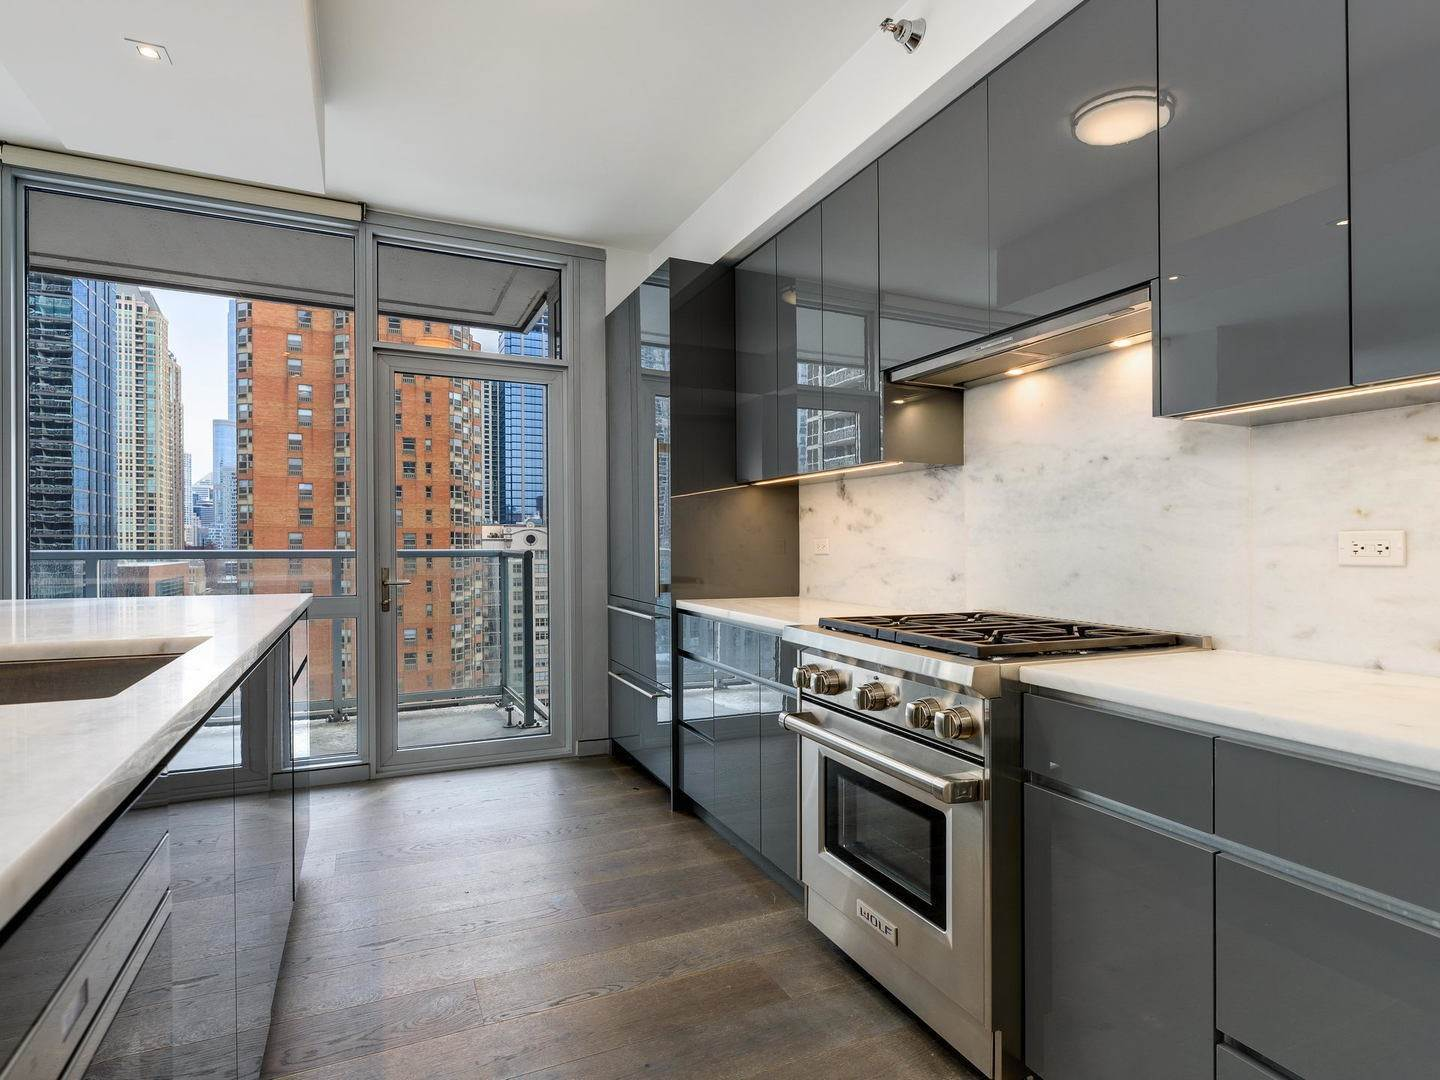 4. Residential Lease at Rush and Division, Chicago, Illinois, 60610 United States